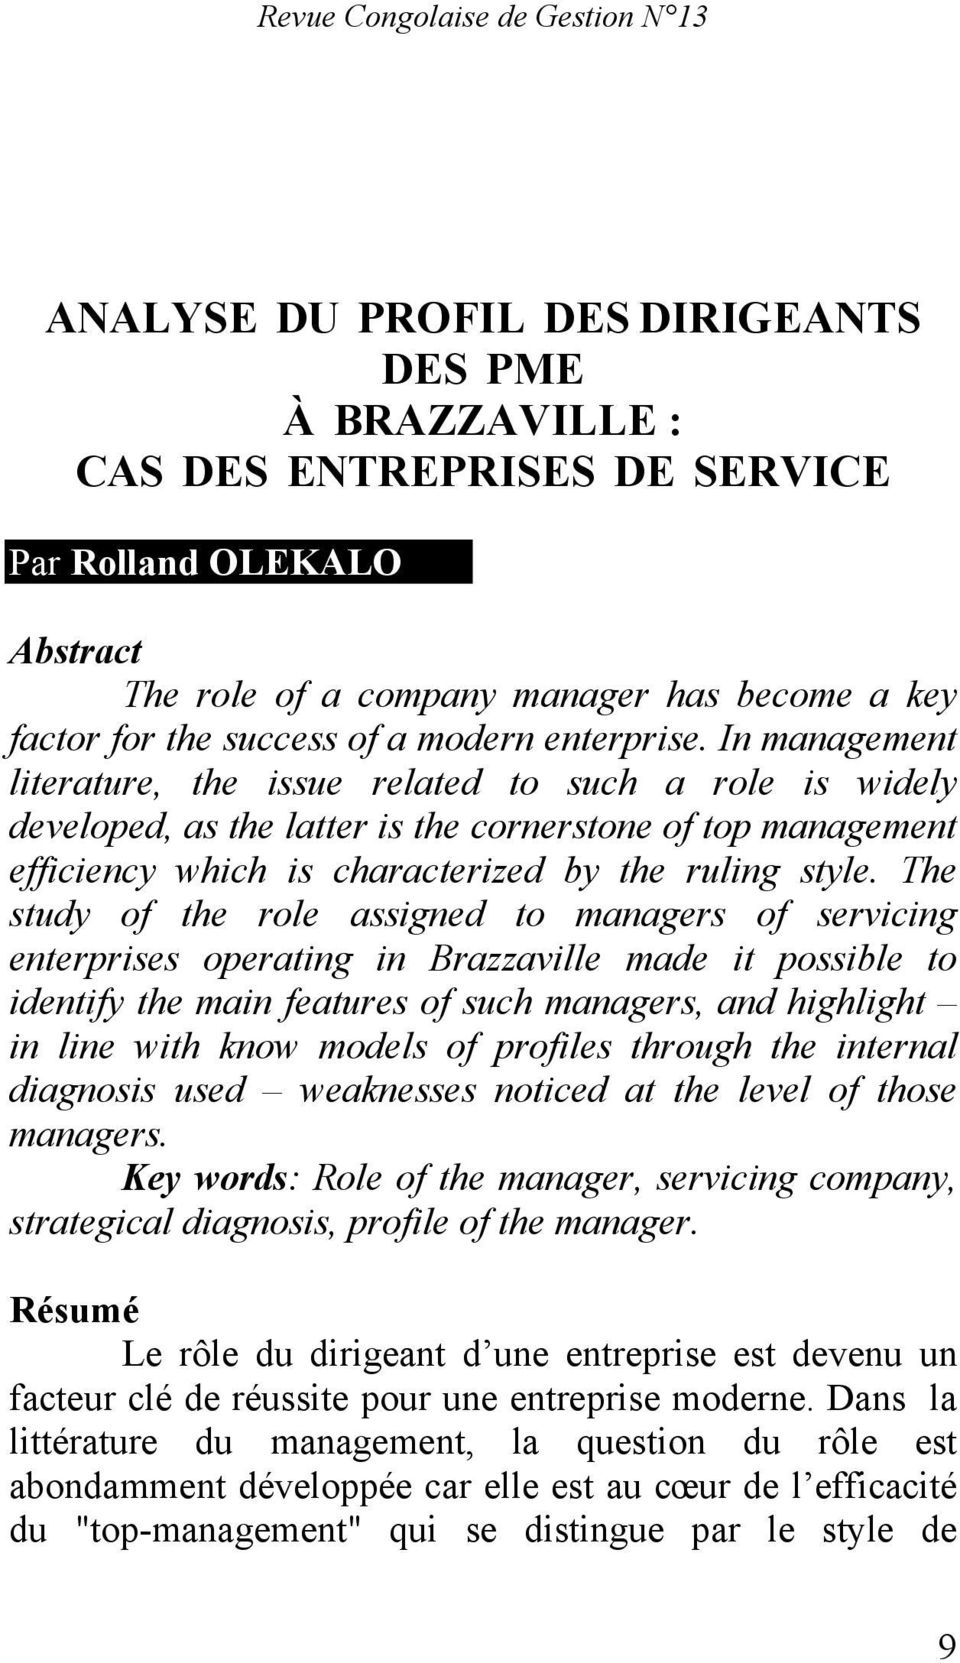 The study of the role assigned to managers of servicing enterprises operating in Brazzaville made it possible to identify the main features of such managers, and highlight in line with know models of